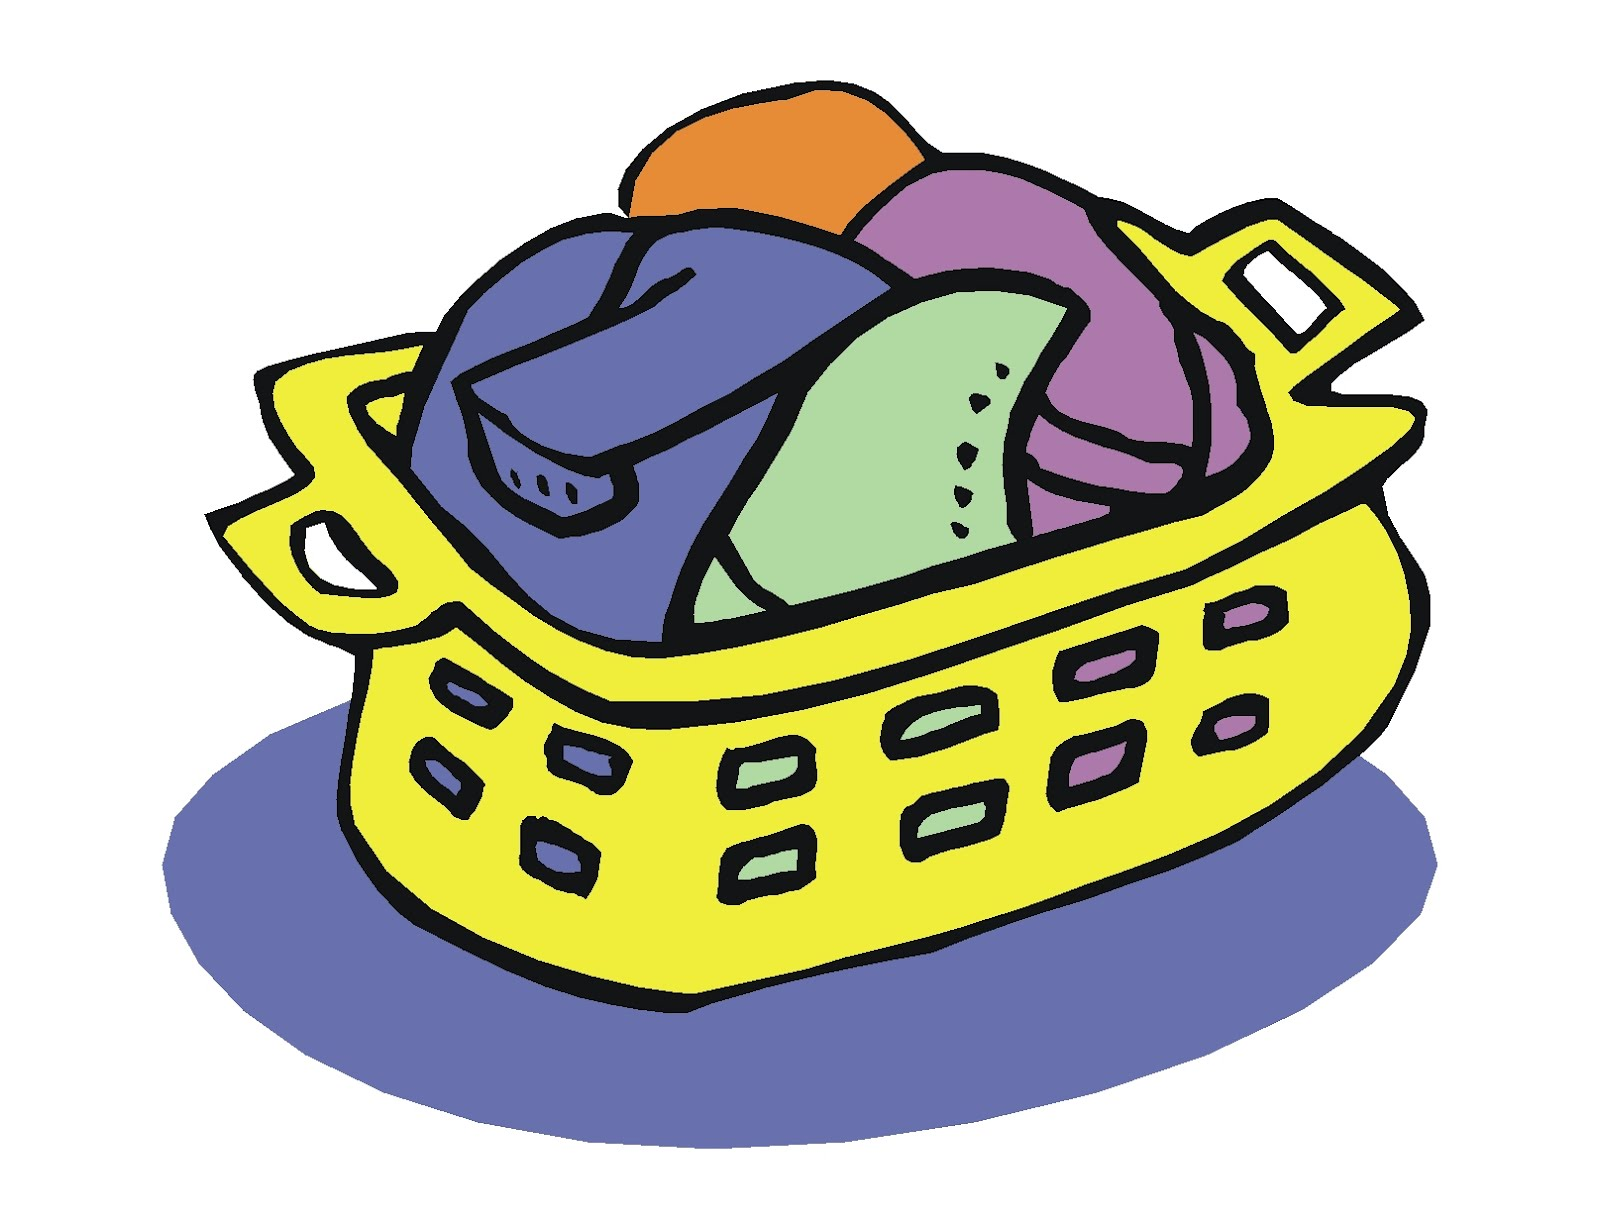 Hate doing laundry clipart cliparts for you image